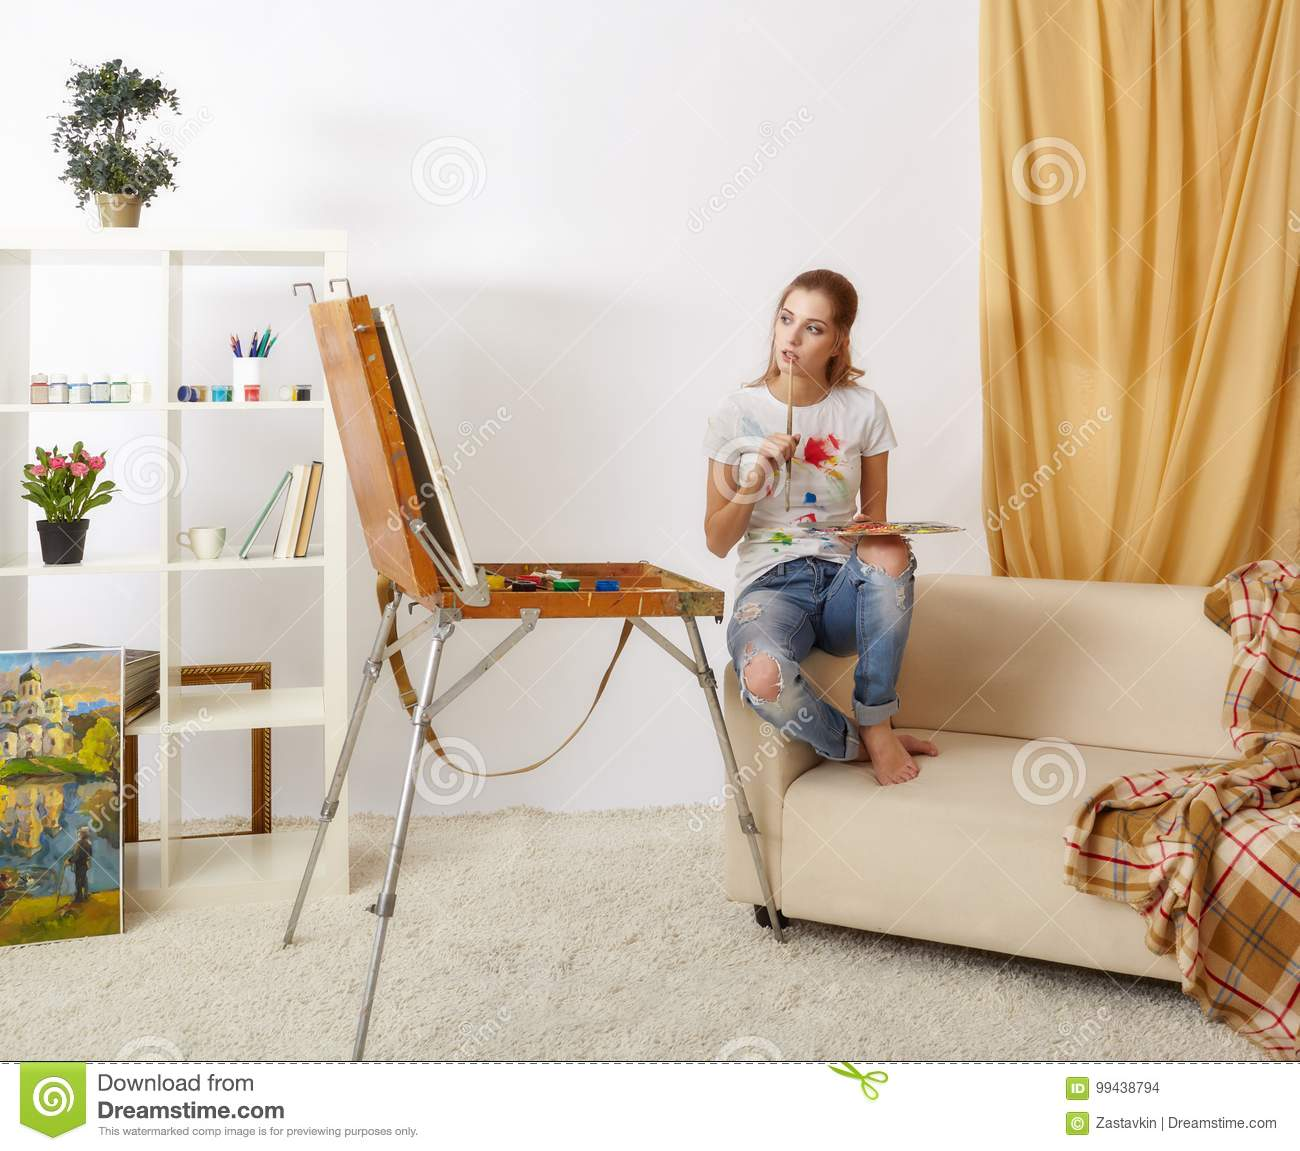 Sofa Palette Painter Female With Wooden Sketchbook Sitting On Sofa And Painting